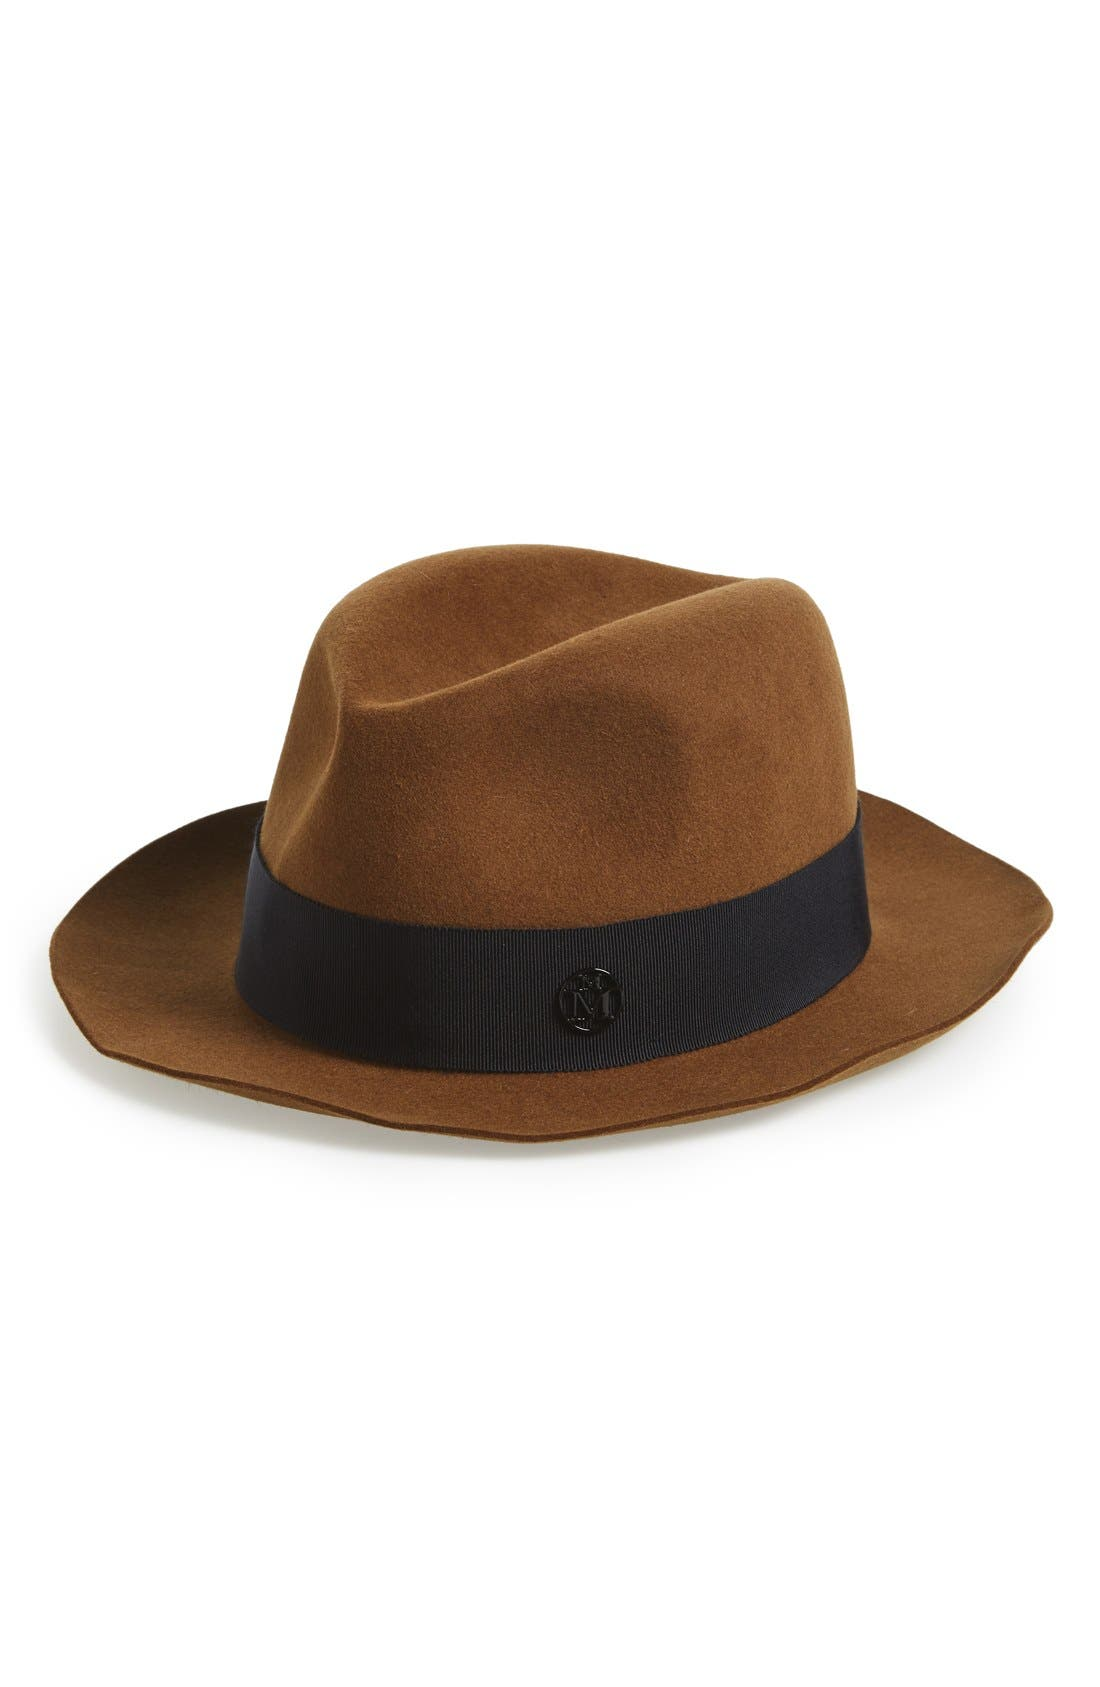 Joseph Fur Felt Hat,                         Main,                         color, Camel